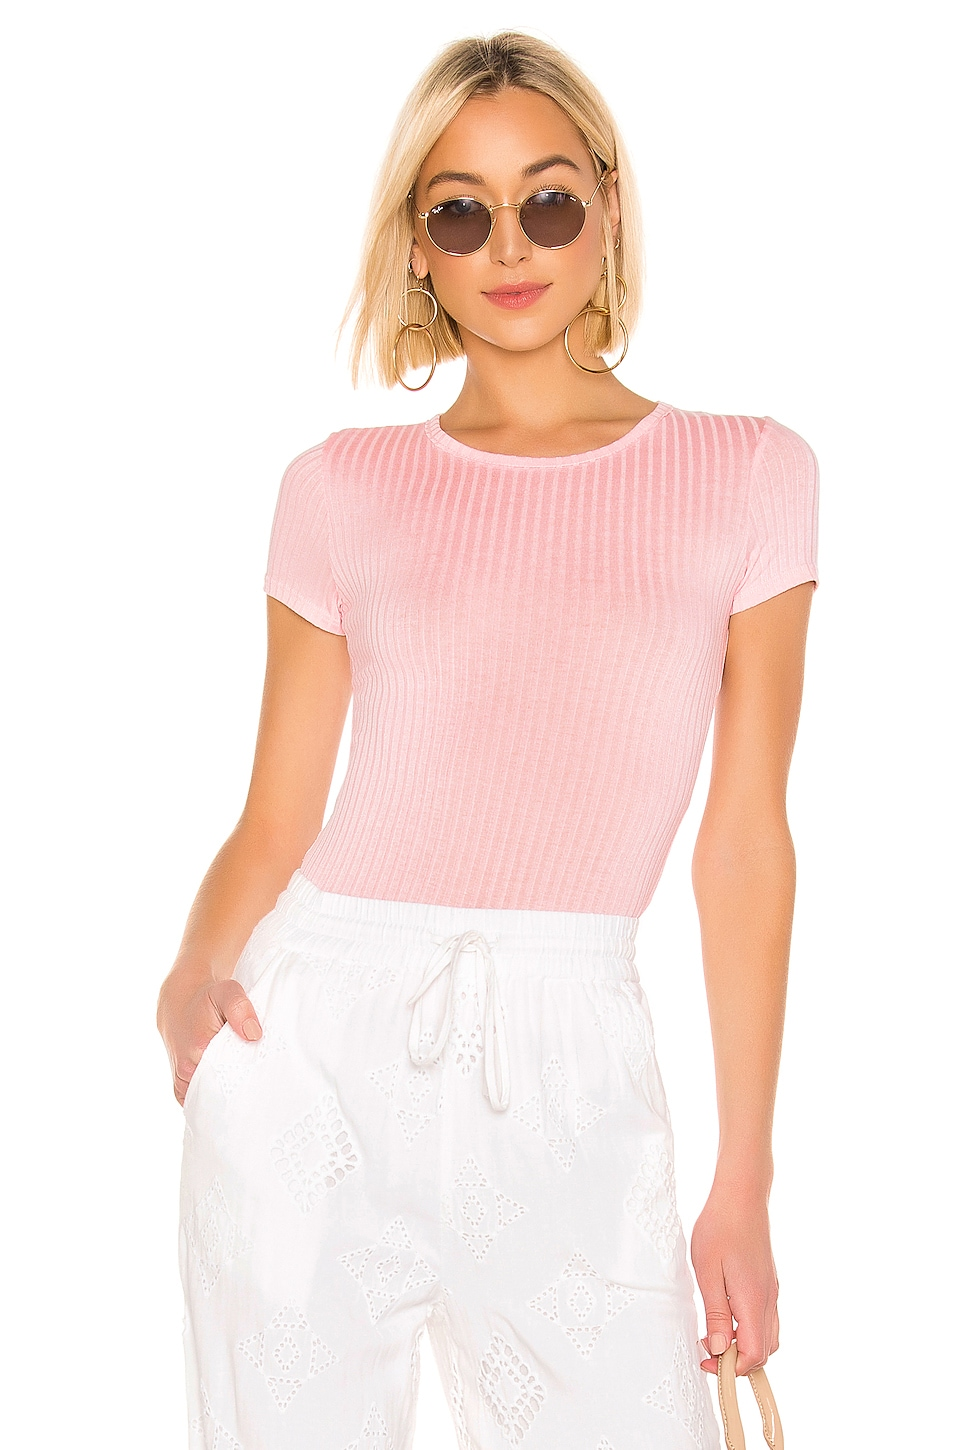 Free People Baby Rib Tee in Rose